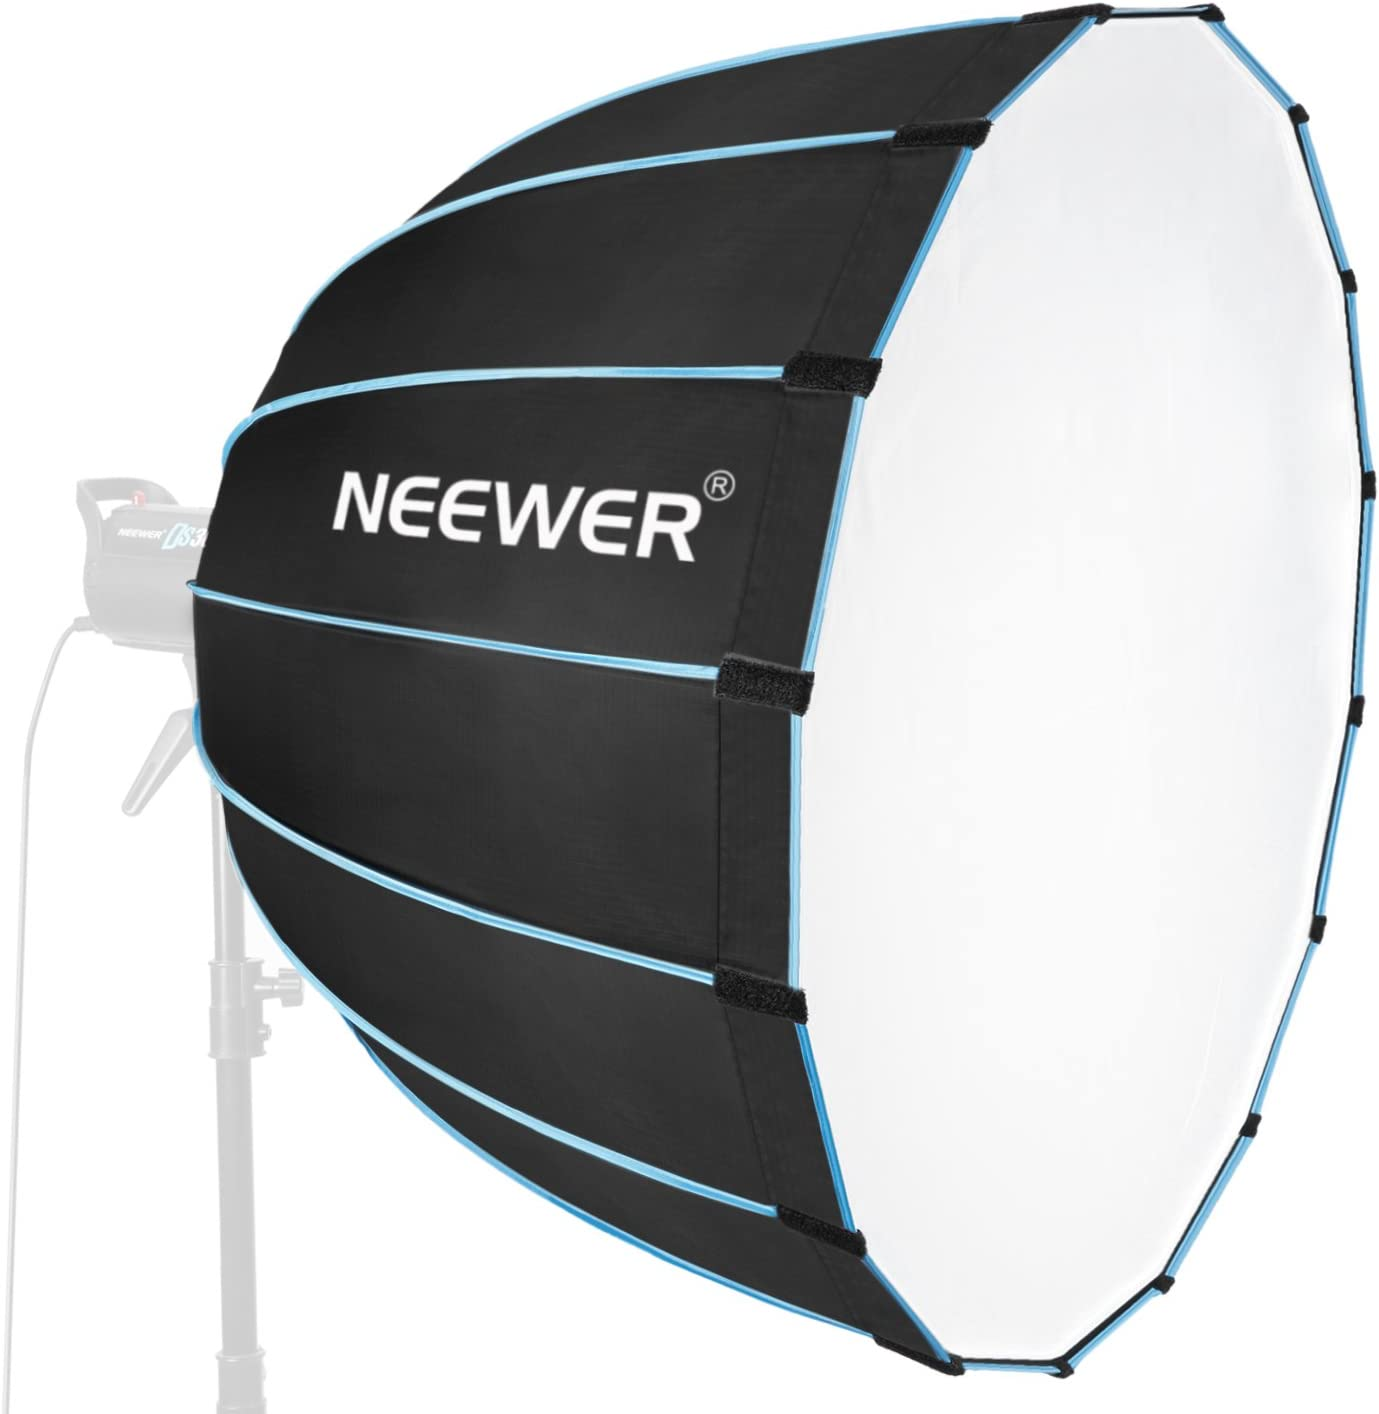 Godox Flashpoint Monolights Such as Neewer,Studio PRO LimoStudio and More Neewer 36 inches//90 centimeters Photography Portable Speedlite Flash Hexadecagon Softbox with Bowens Mount for Speedlites